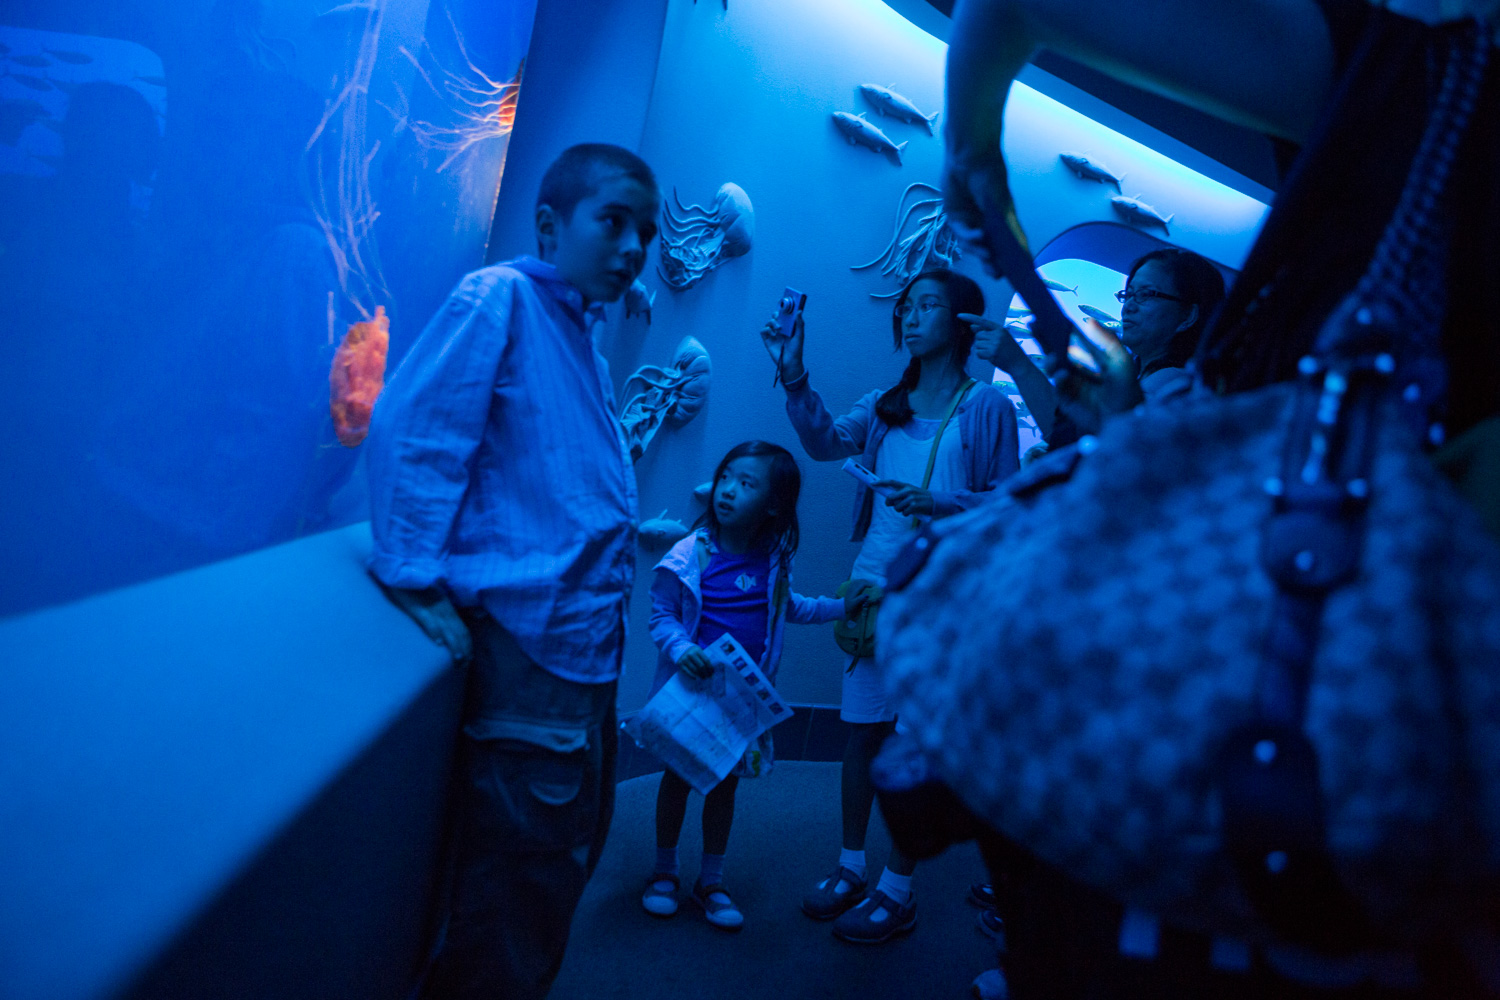 A family observes a jellyfish display at the Monterey Bay Aquarium.